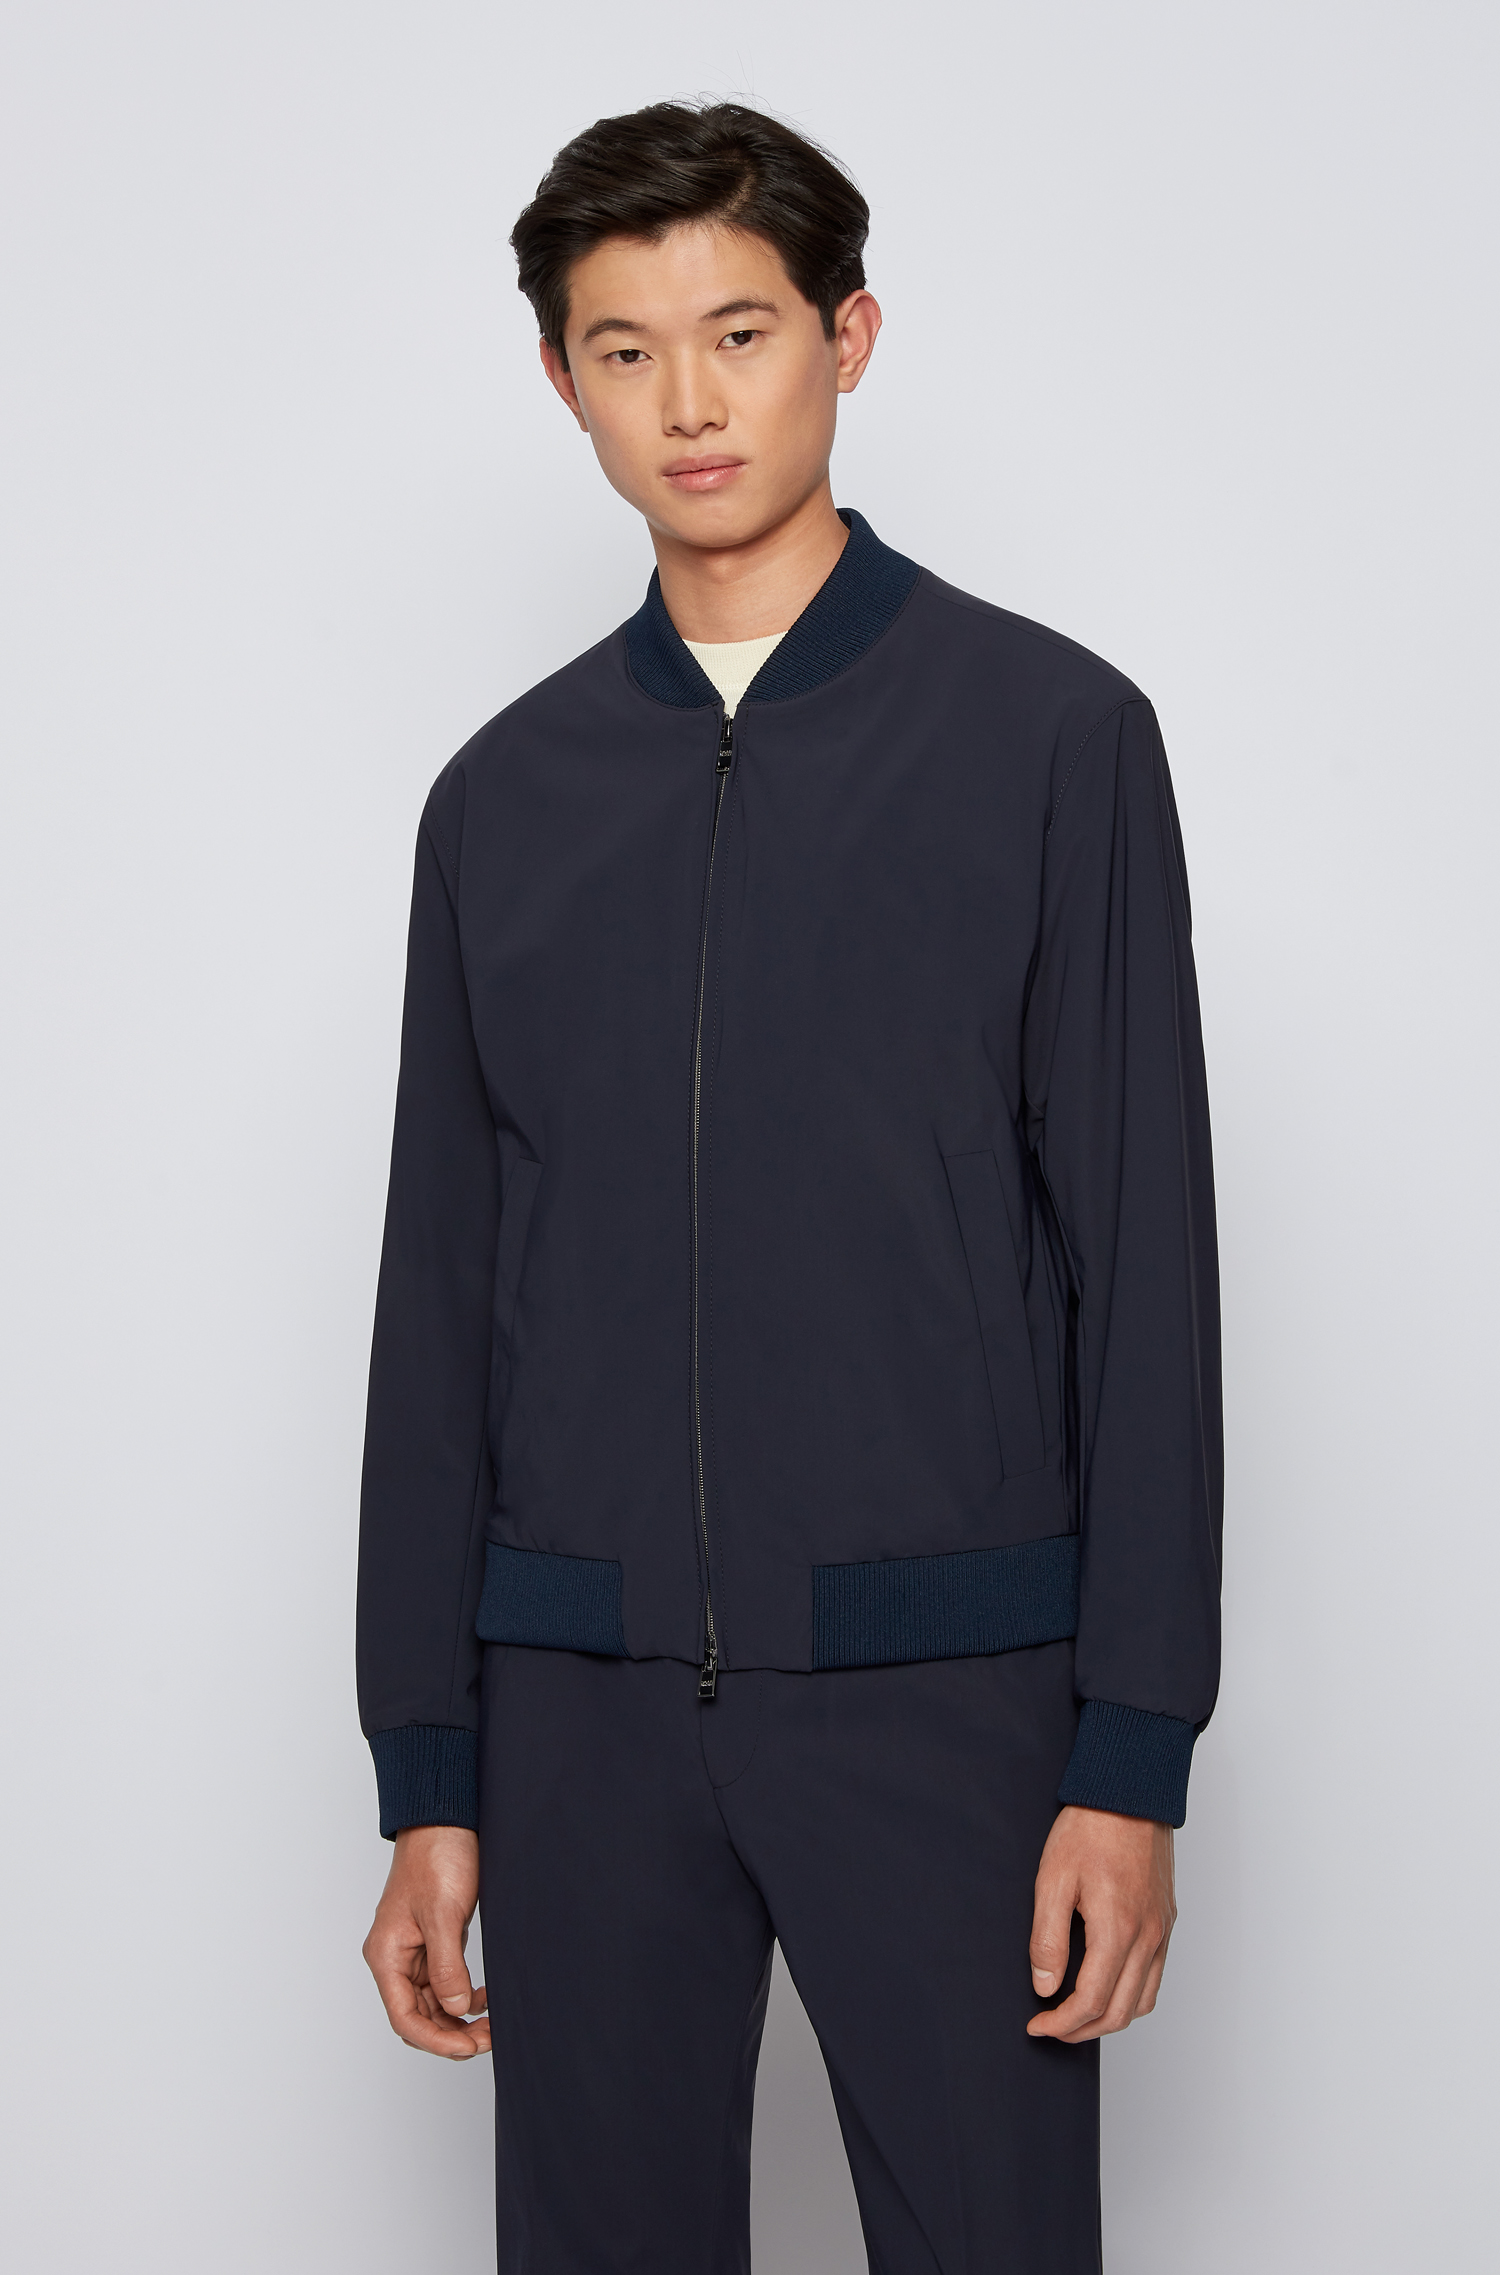 Slim fit jacket in stretch fabric BOSS | Jackets | 50453801402